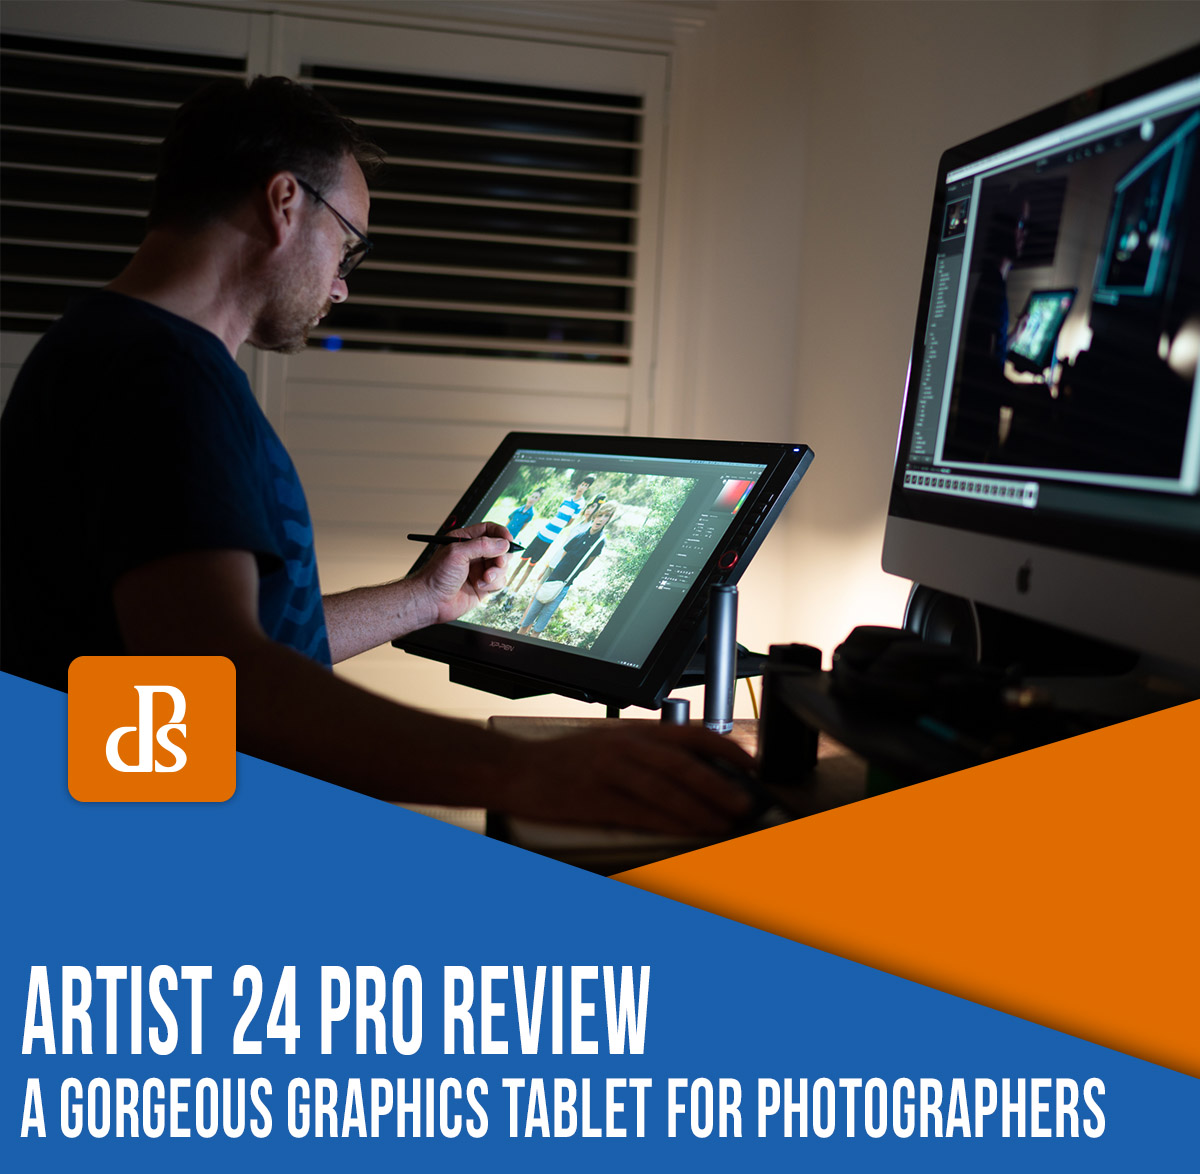 XP-Pen Artist 24 Pro Review: A Gorgeous Graphics Tablet for Photographers